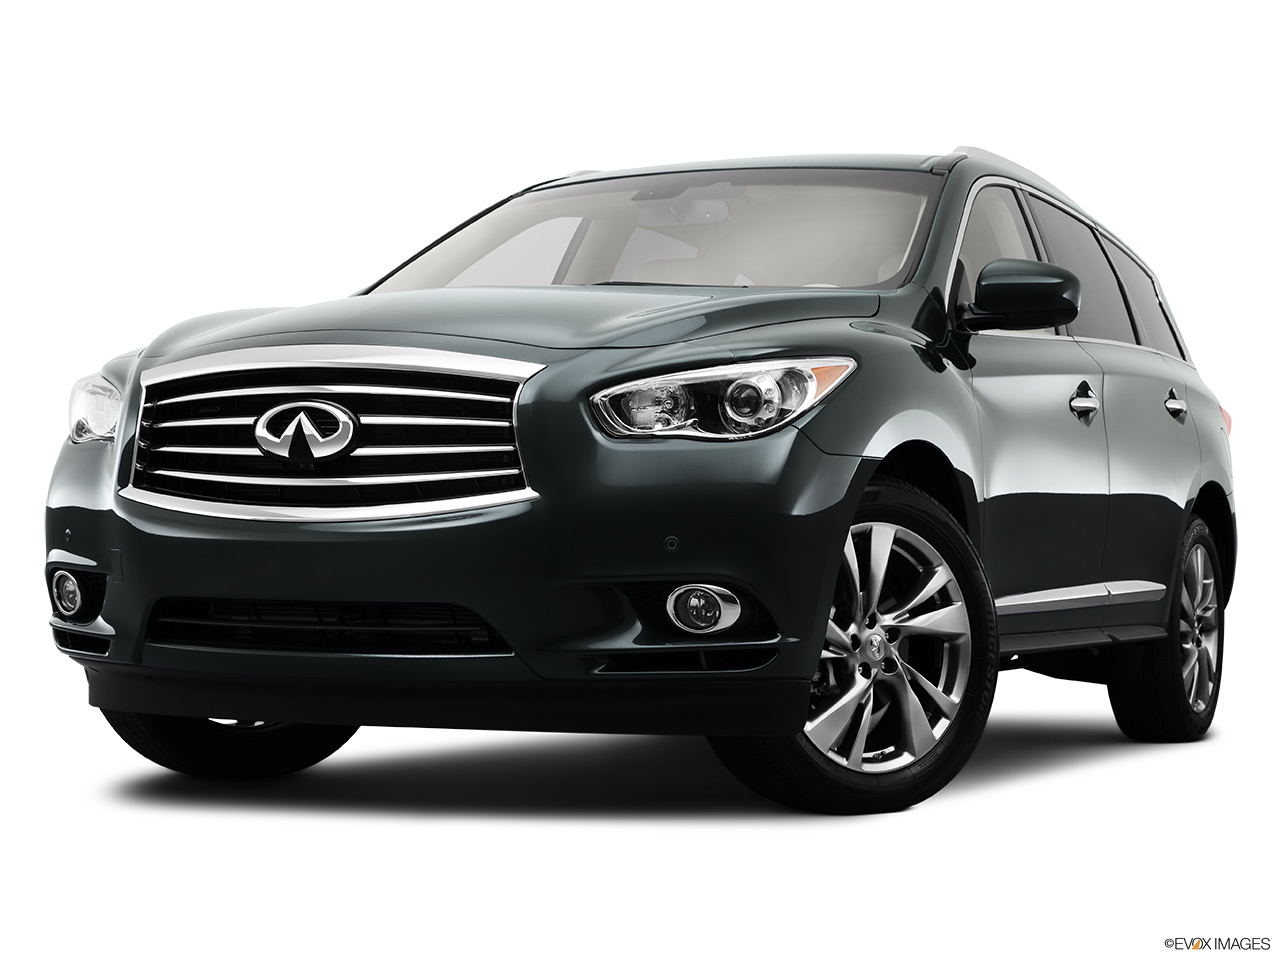 2013 Infiniti JX JX35 Front angle view, low wide perspective.